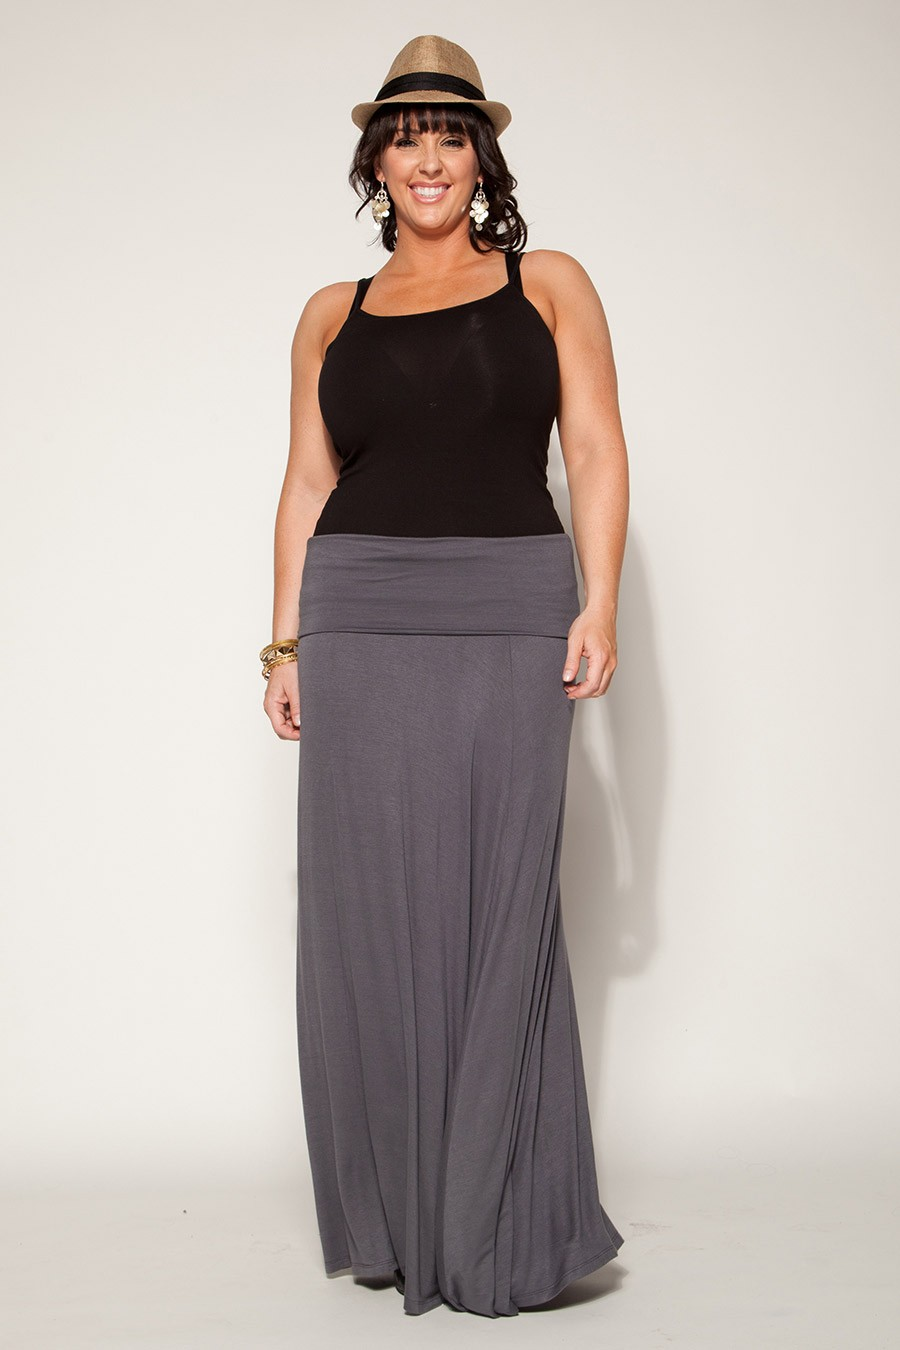 Trendy Plus Sized Clothes and Dresses for Women - Maxi Skirt